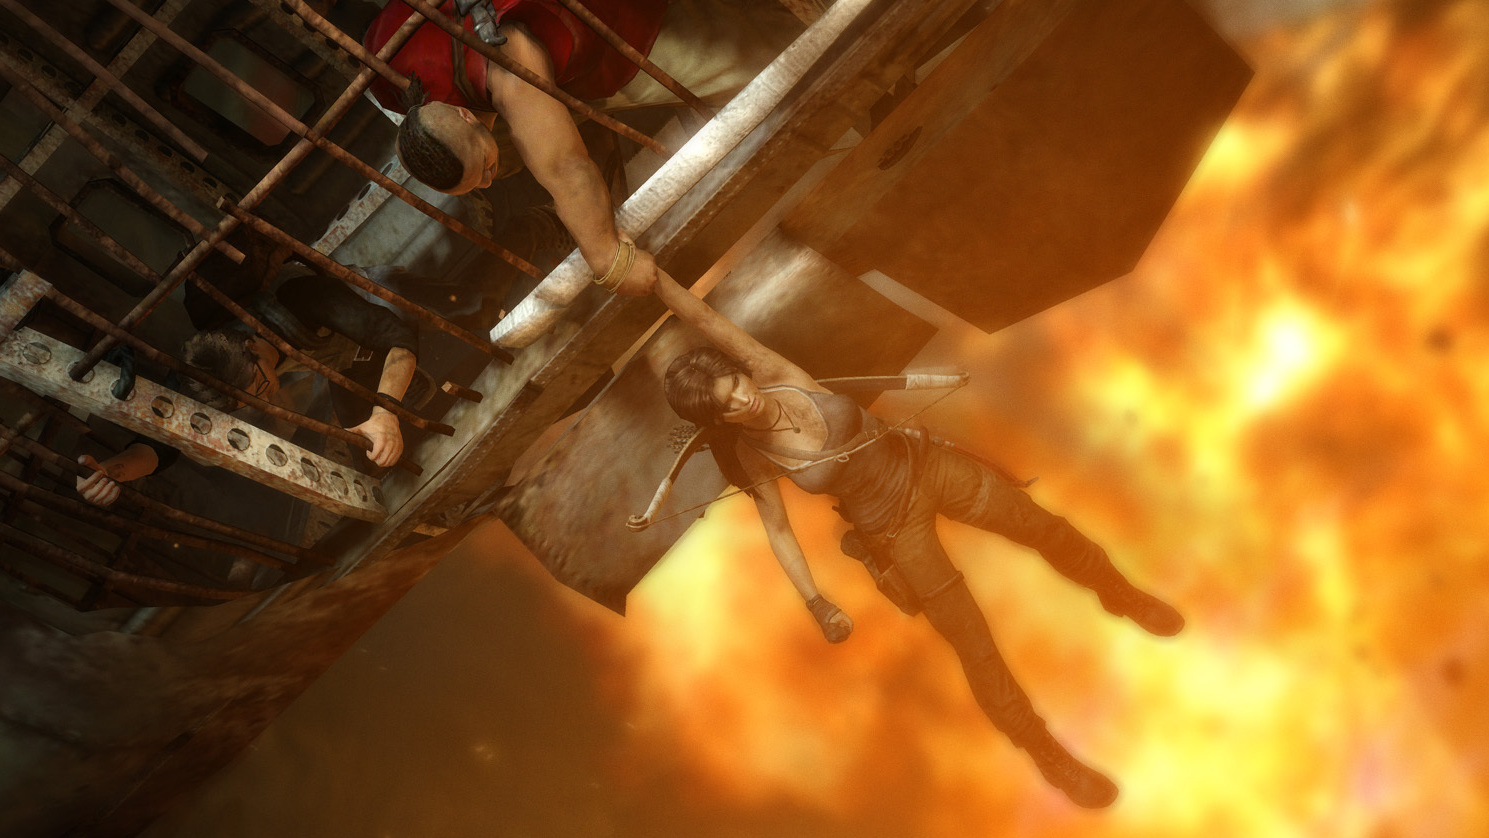 Tomb Raider Makes The Case For Old Fashioned Console Gaming All